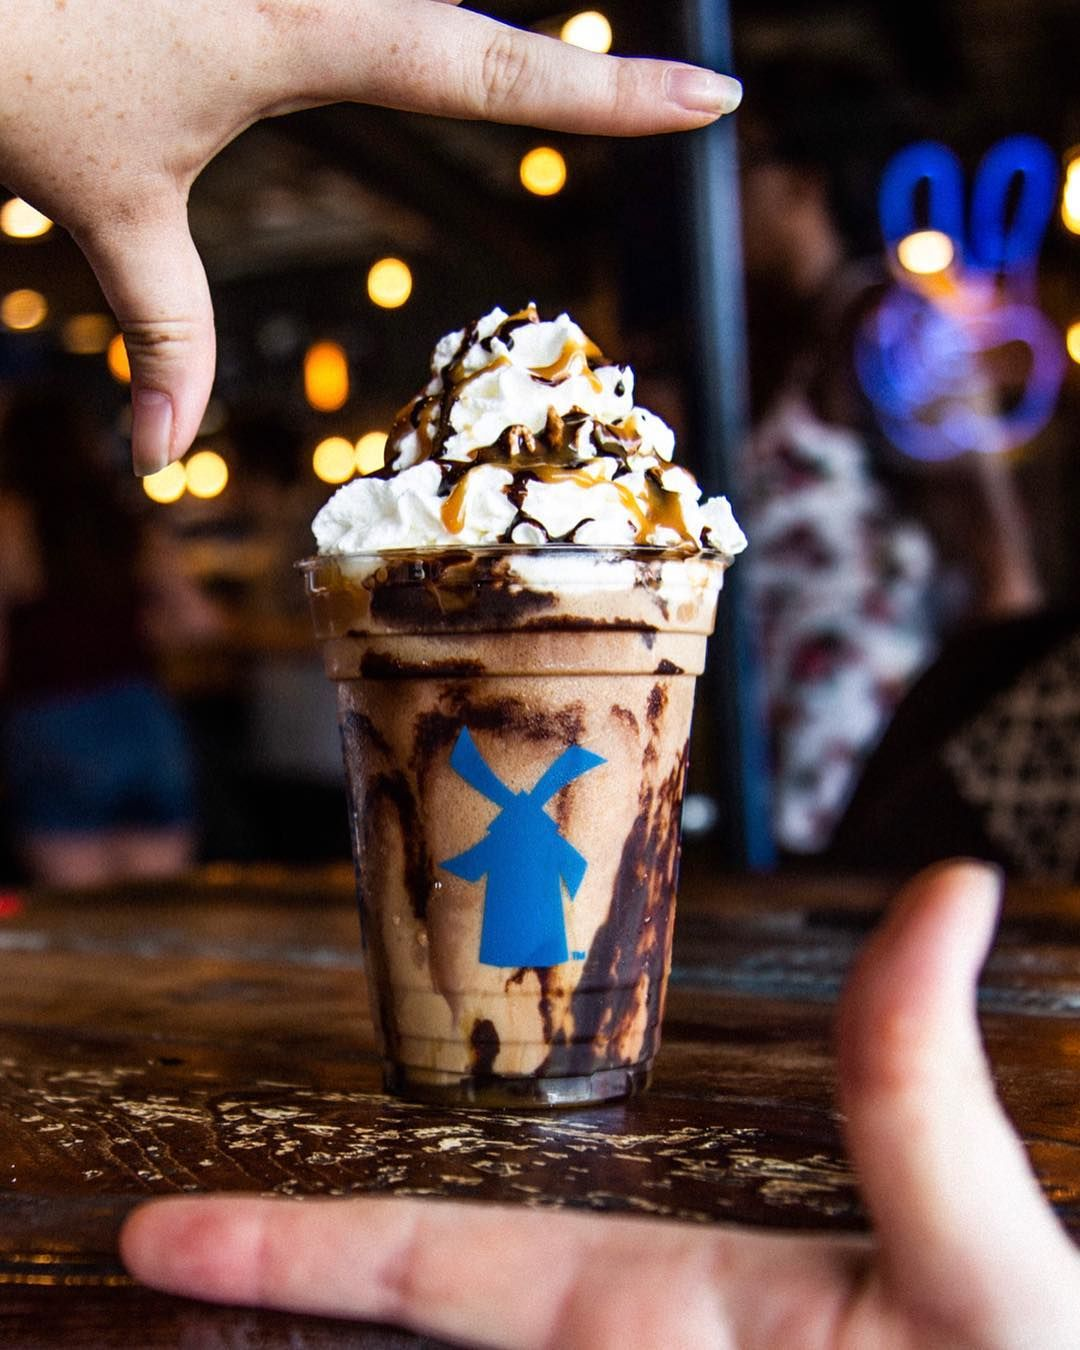 15 Dutch Bros Drinks You Can Order From the Secret Menu #dutchbros